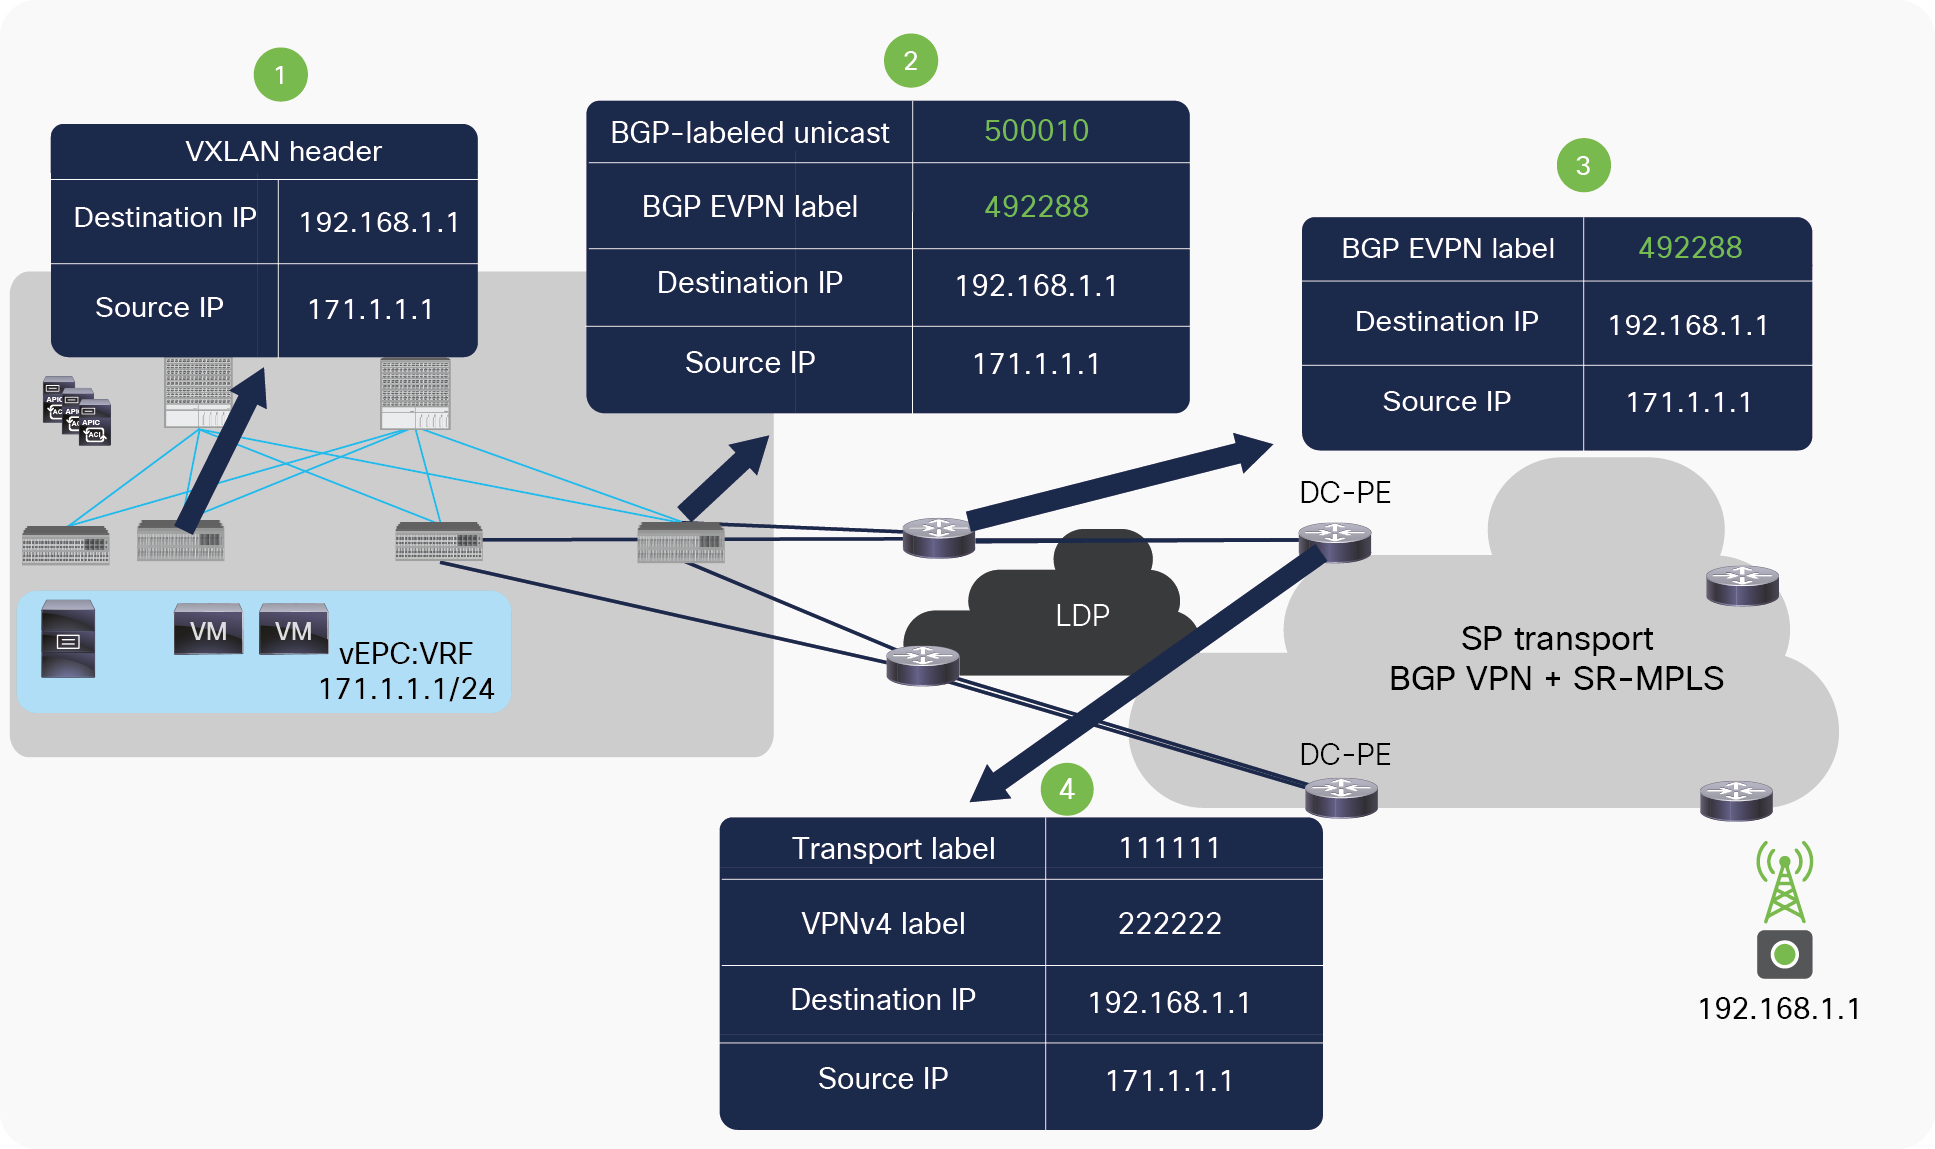 Packet walk from ACI fabric to DC-PE across MPLS LDP network